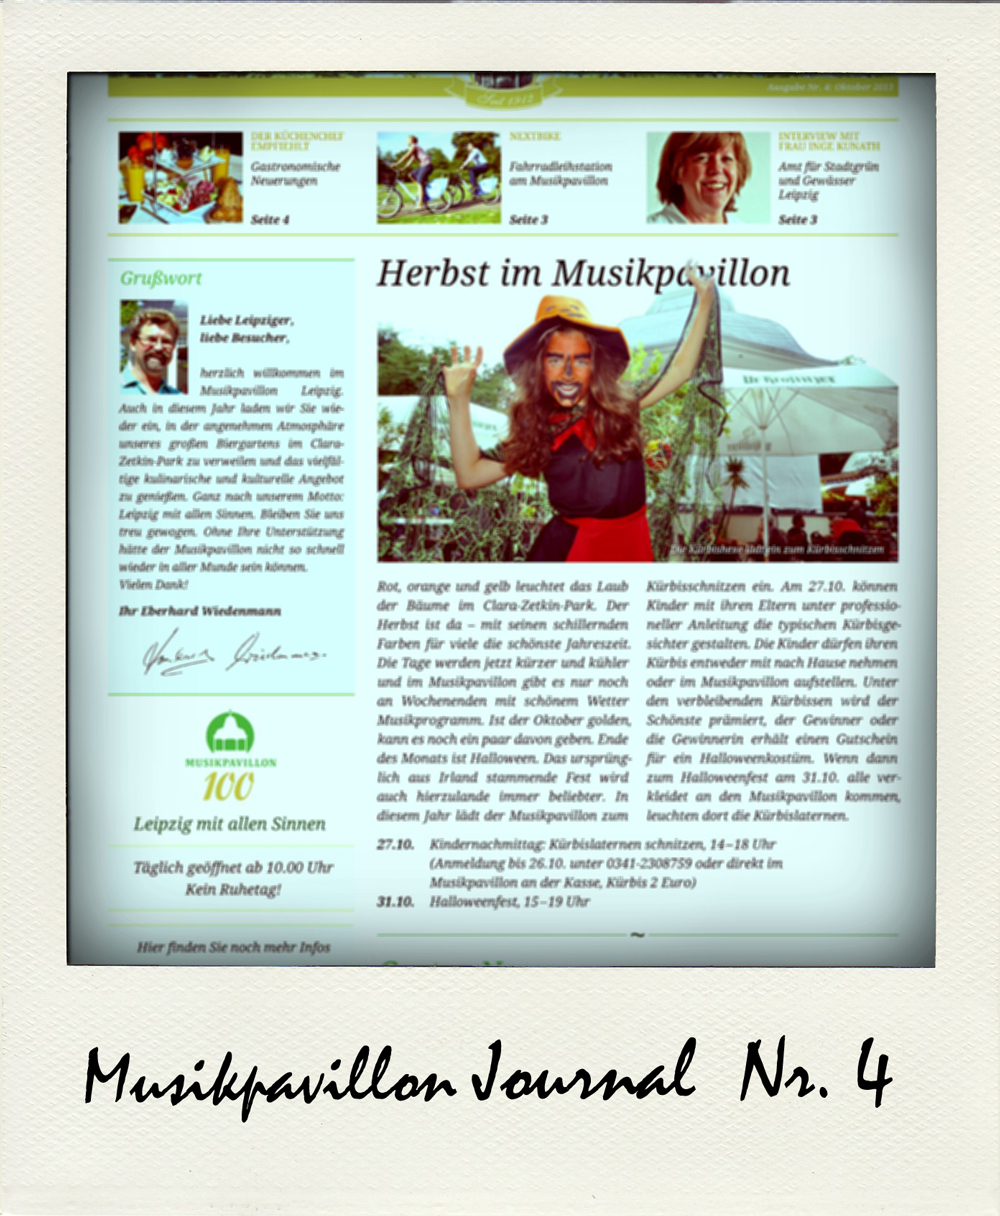 Musikpavillon Journal Ausgabe 4